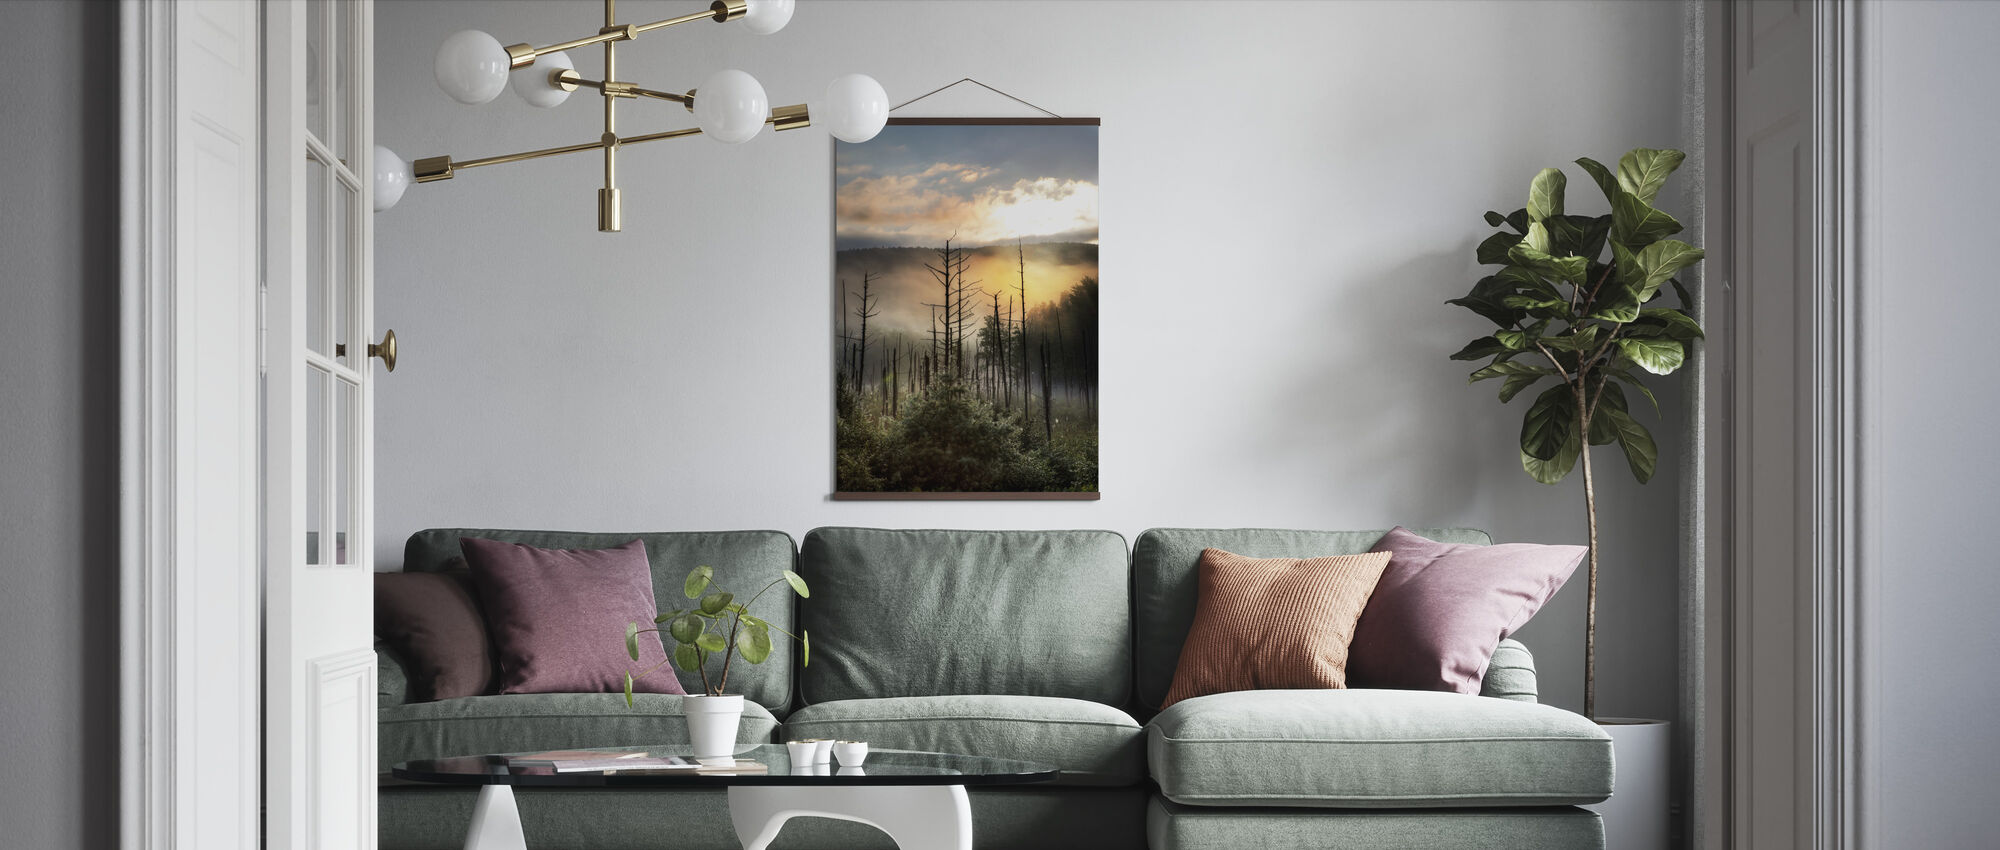 Vermont Swamp at Sunrise - Poster - Living Room